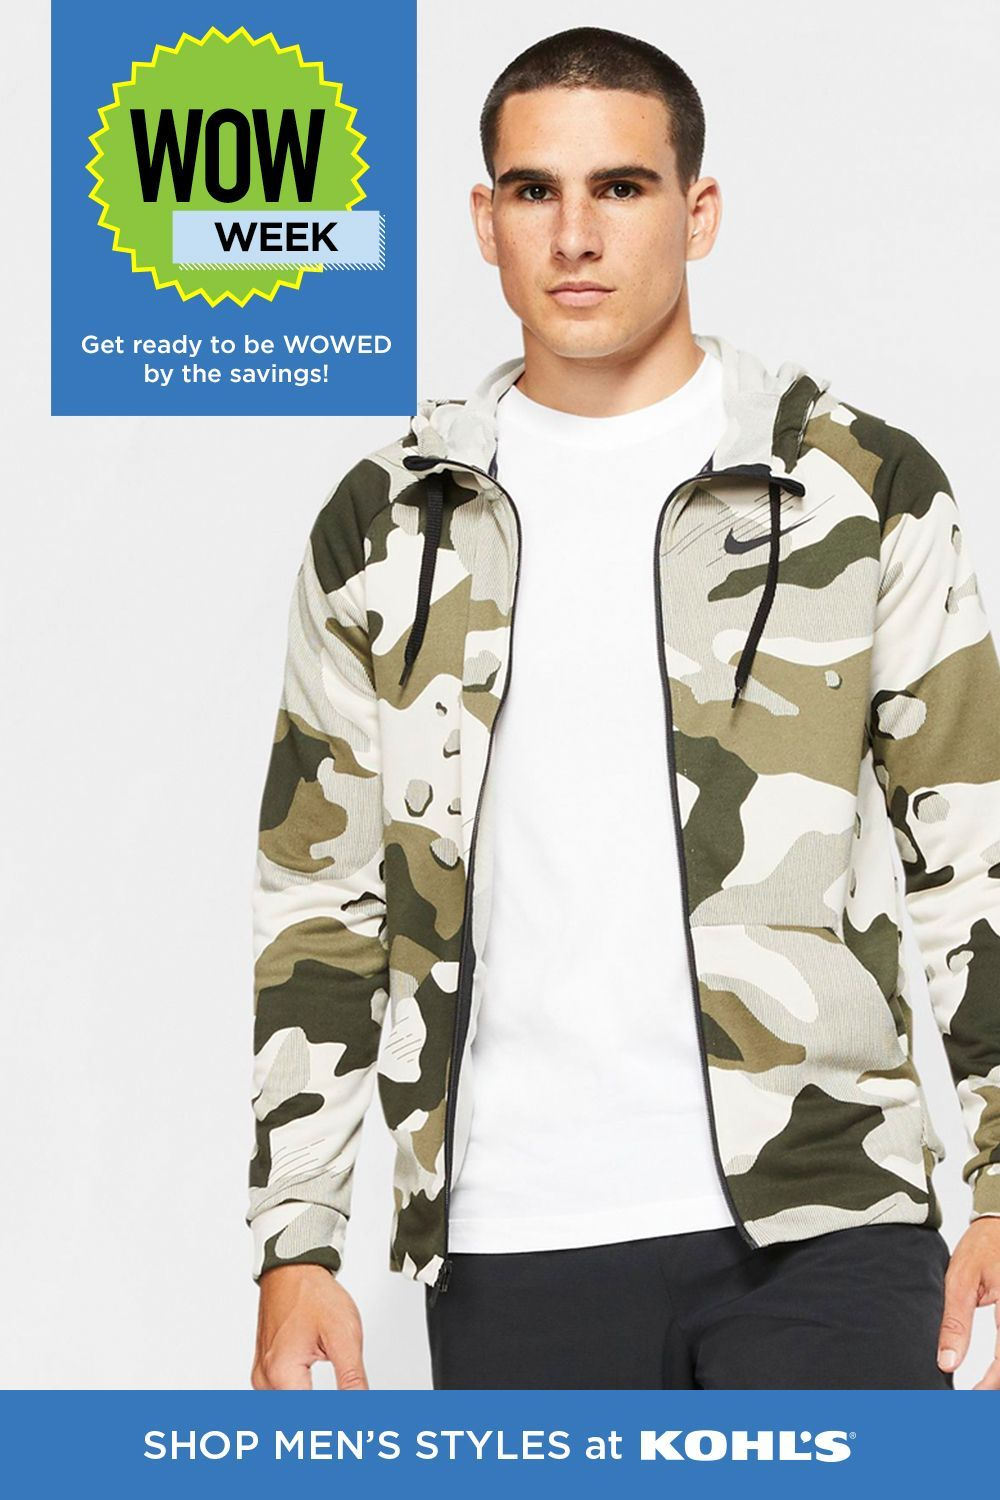 WOW Week is here! Save on your favorite brands, like Nike, and take 60-70% off select styles of men's clothing now through 6/28. Shop these great deals and more at Kohl's and Kohl's.com. #mensstyles #greatdeals